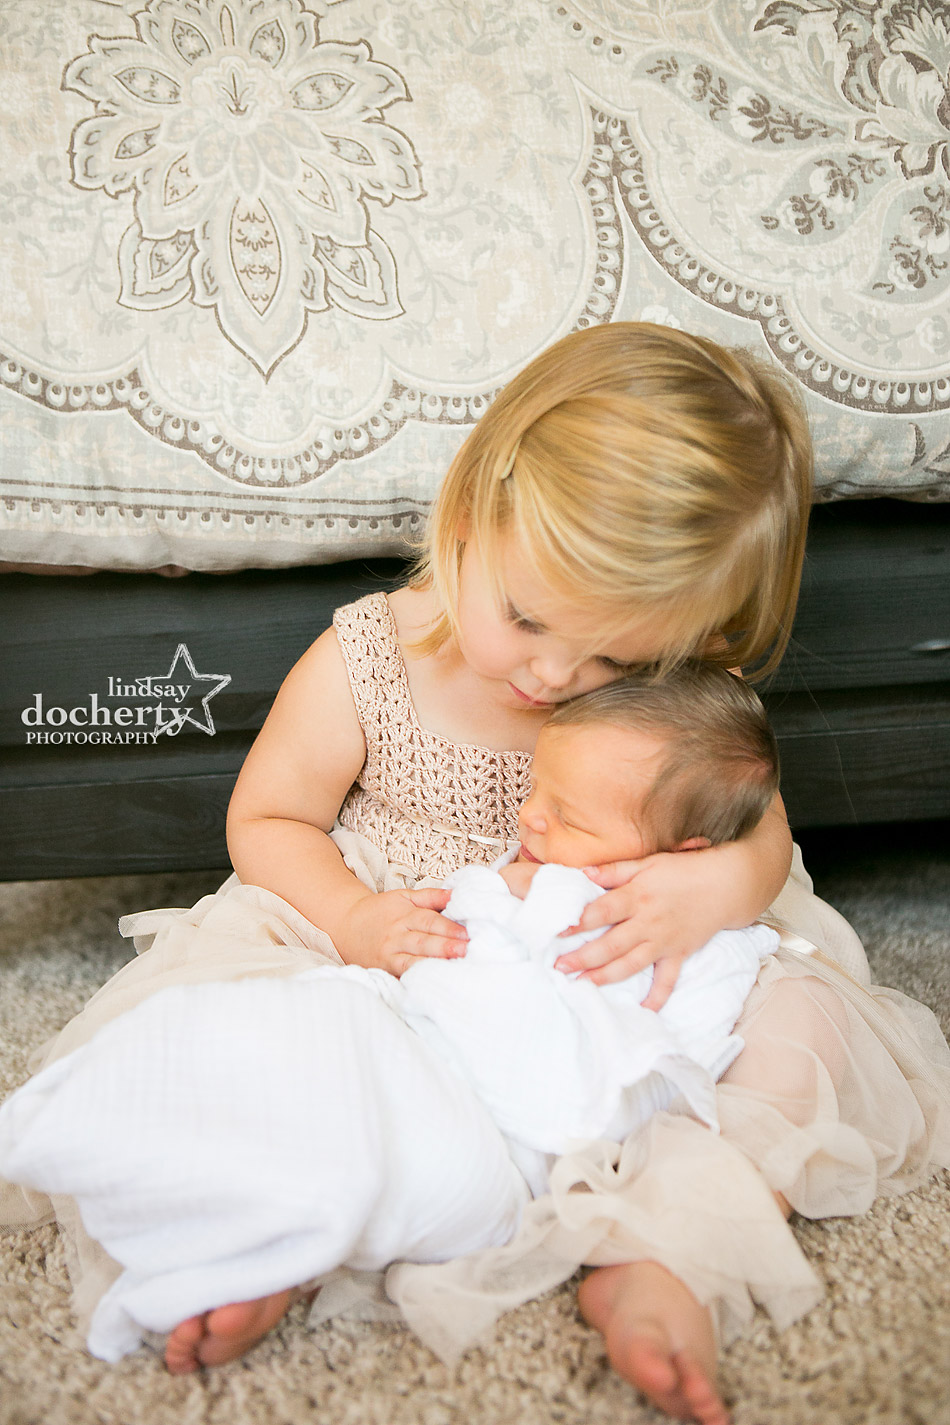 Big sister holding newborn baby brother for photo session in Philadelphia